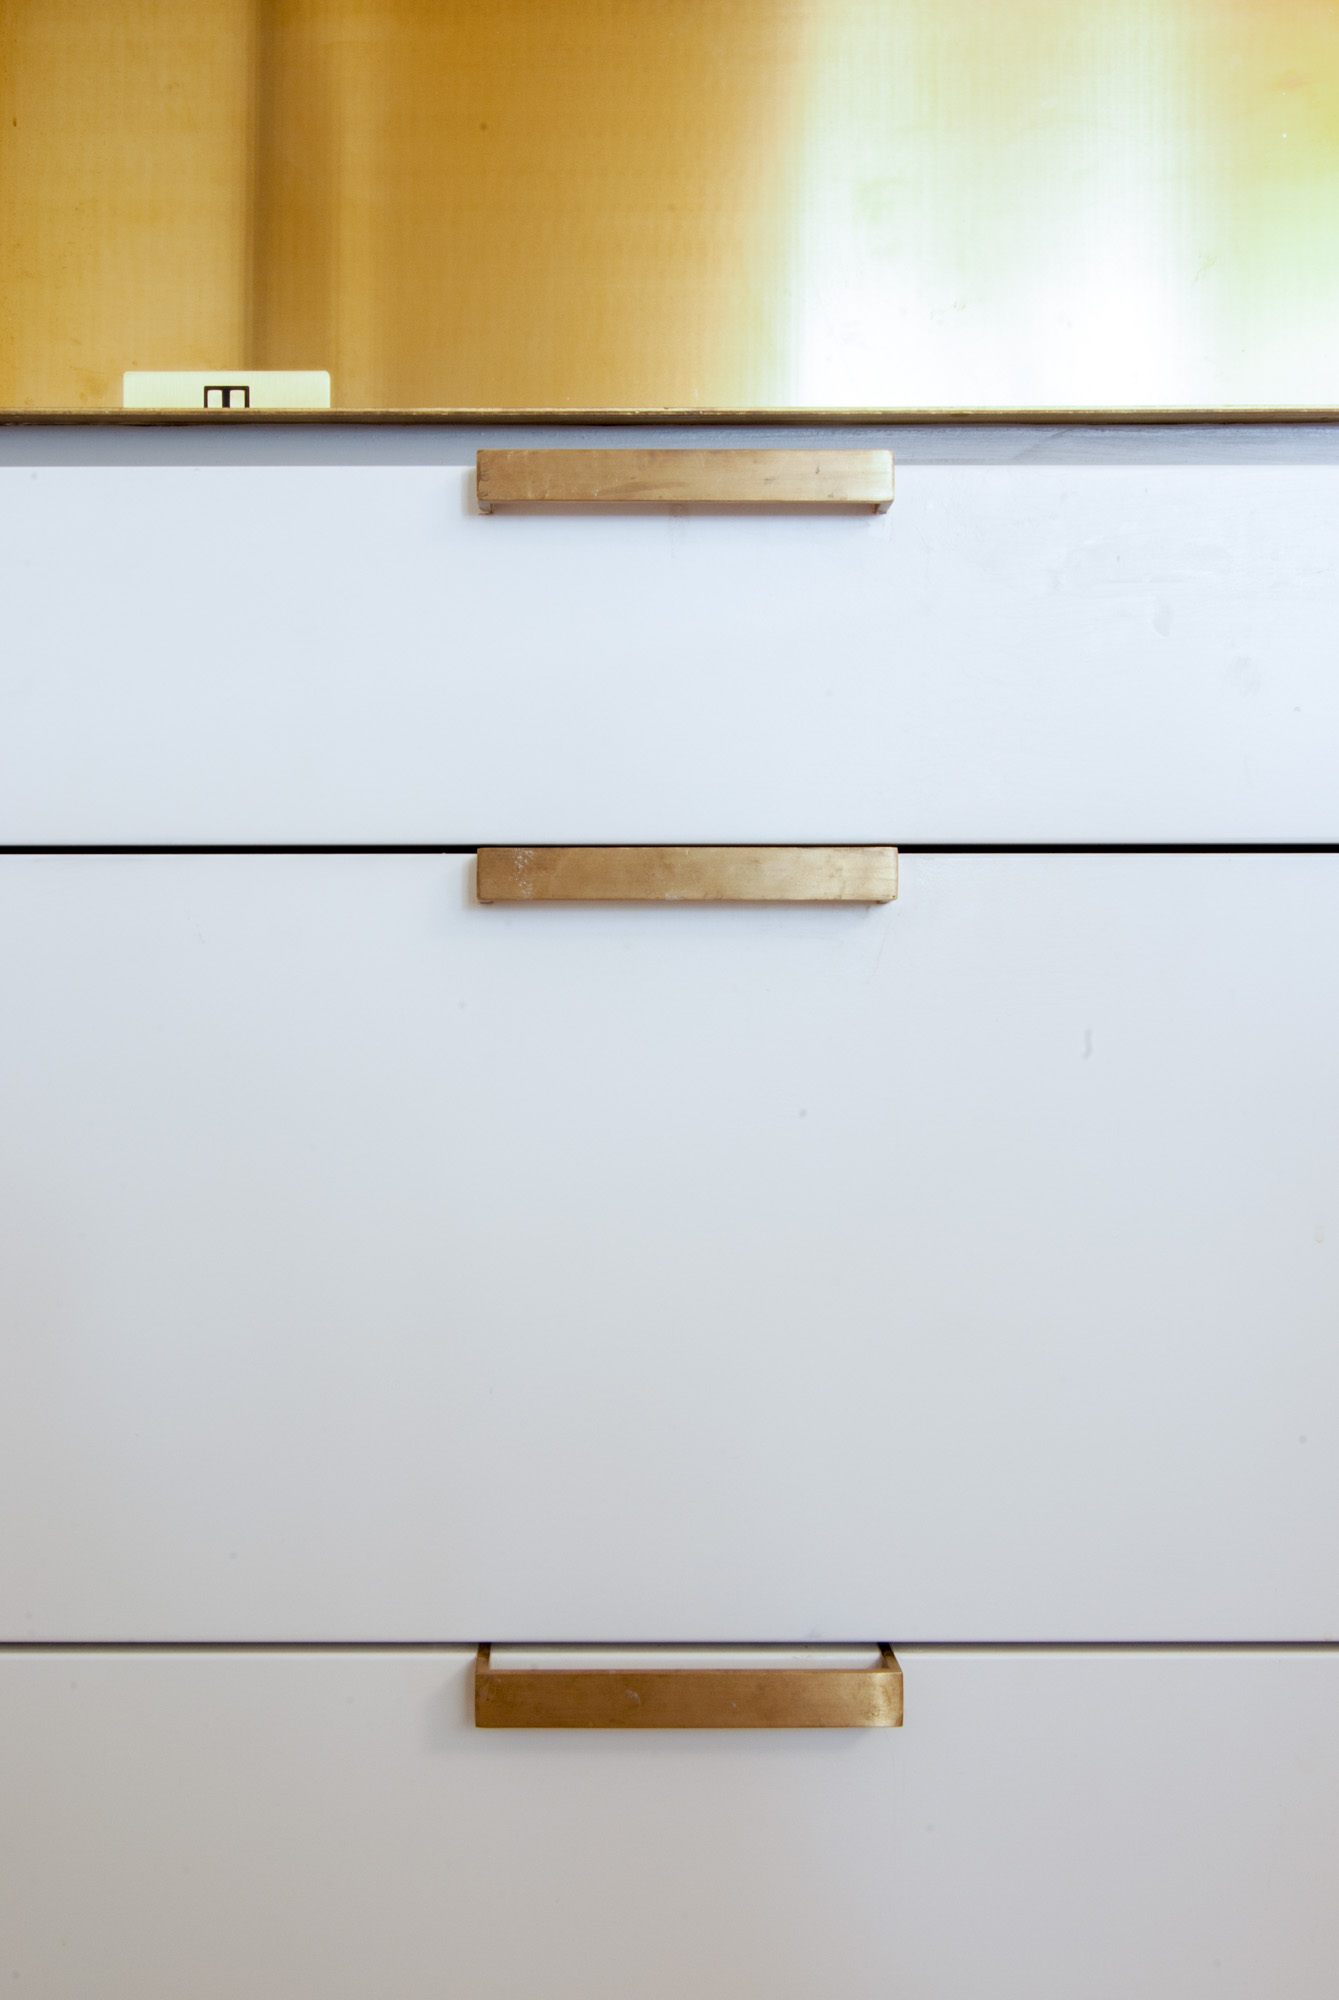 Close up of the bespoke handles along the brass worktop and white kitchen cabinets.